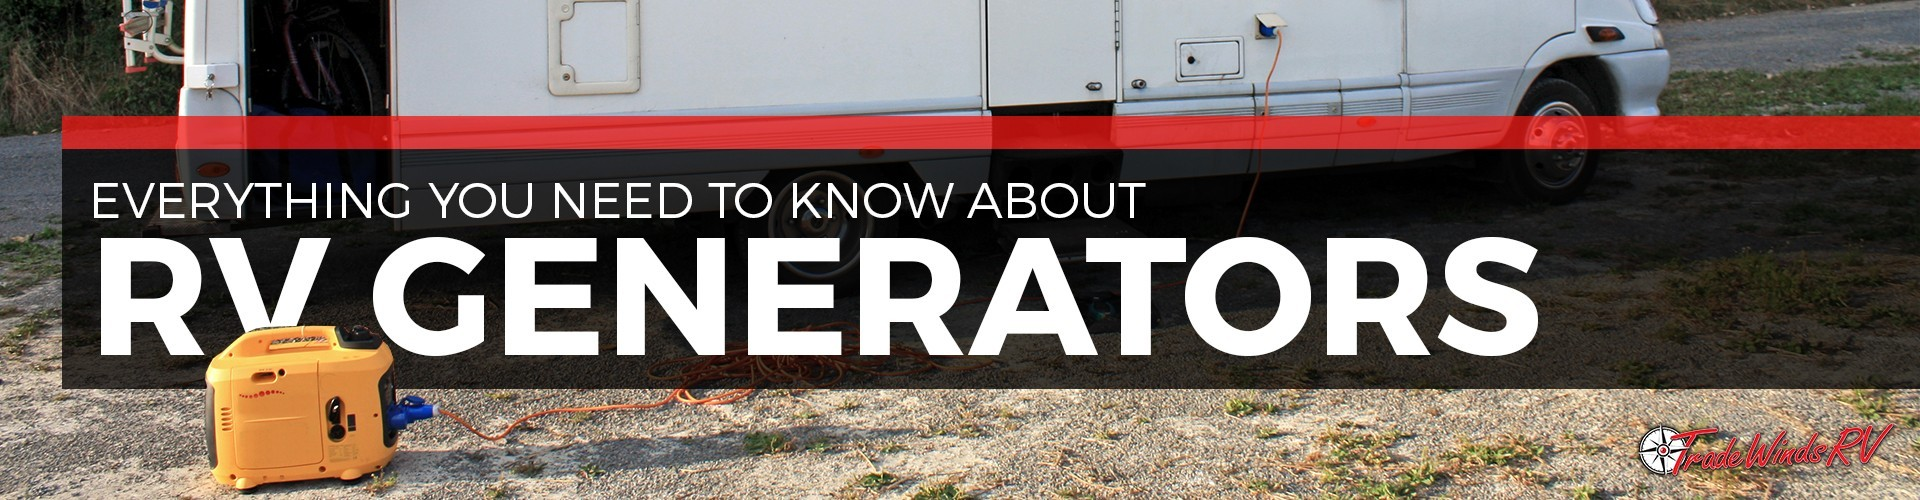 Everything You Need to Know About RV Generators  Tradewinds RV Blog